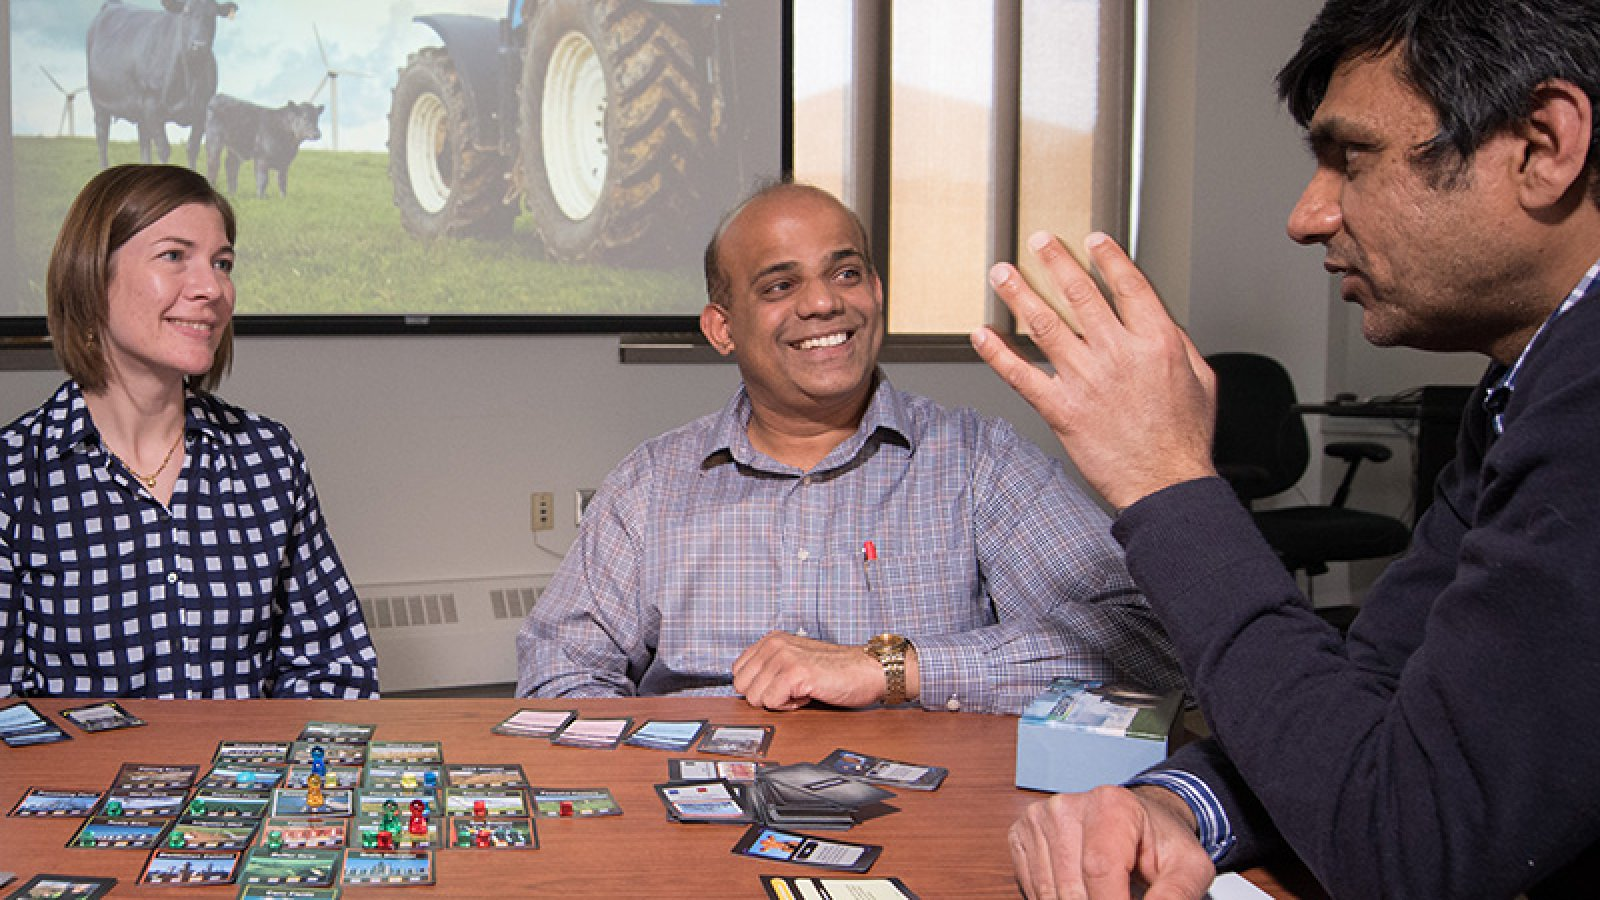 Biological Systems Engineering faculty (from left) Jenny Keshwani, Jeyam Subbiah and Ashu Guru have developed AgPocalypse, a video game to teach farming.